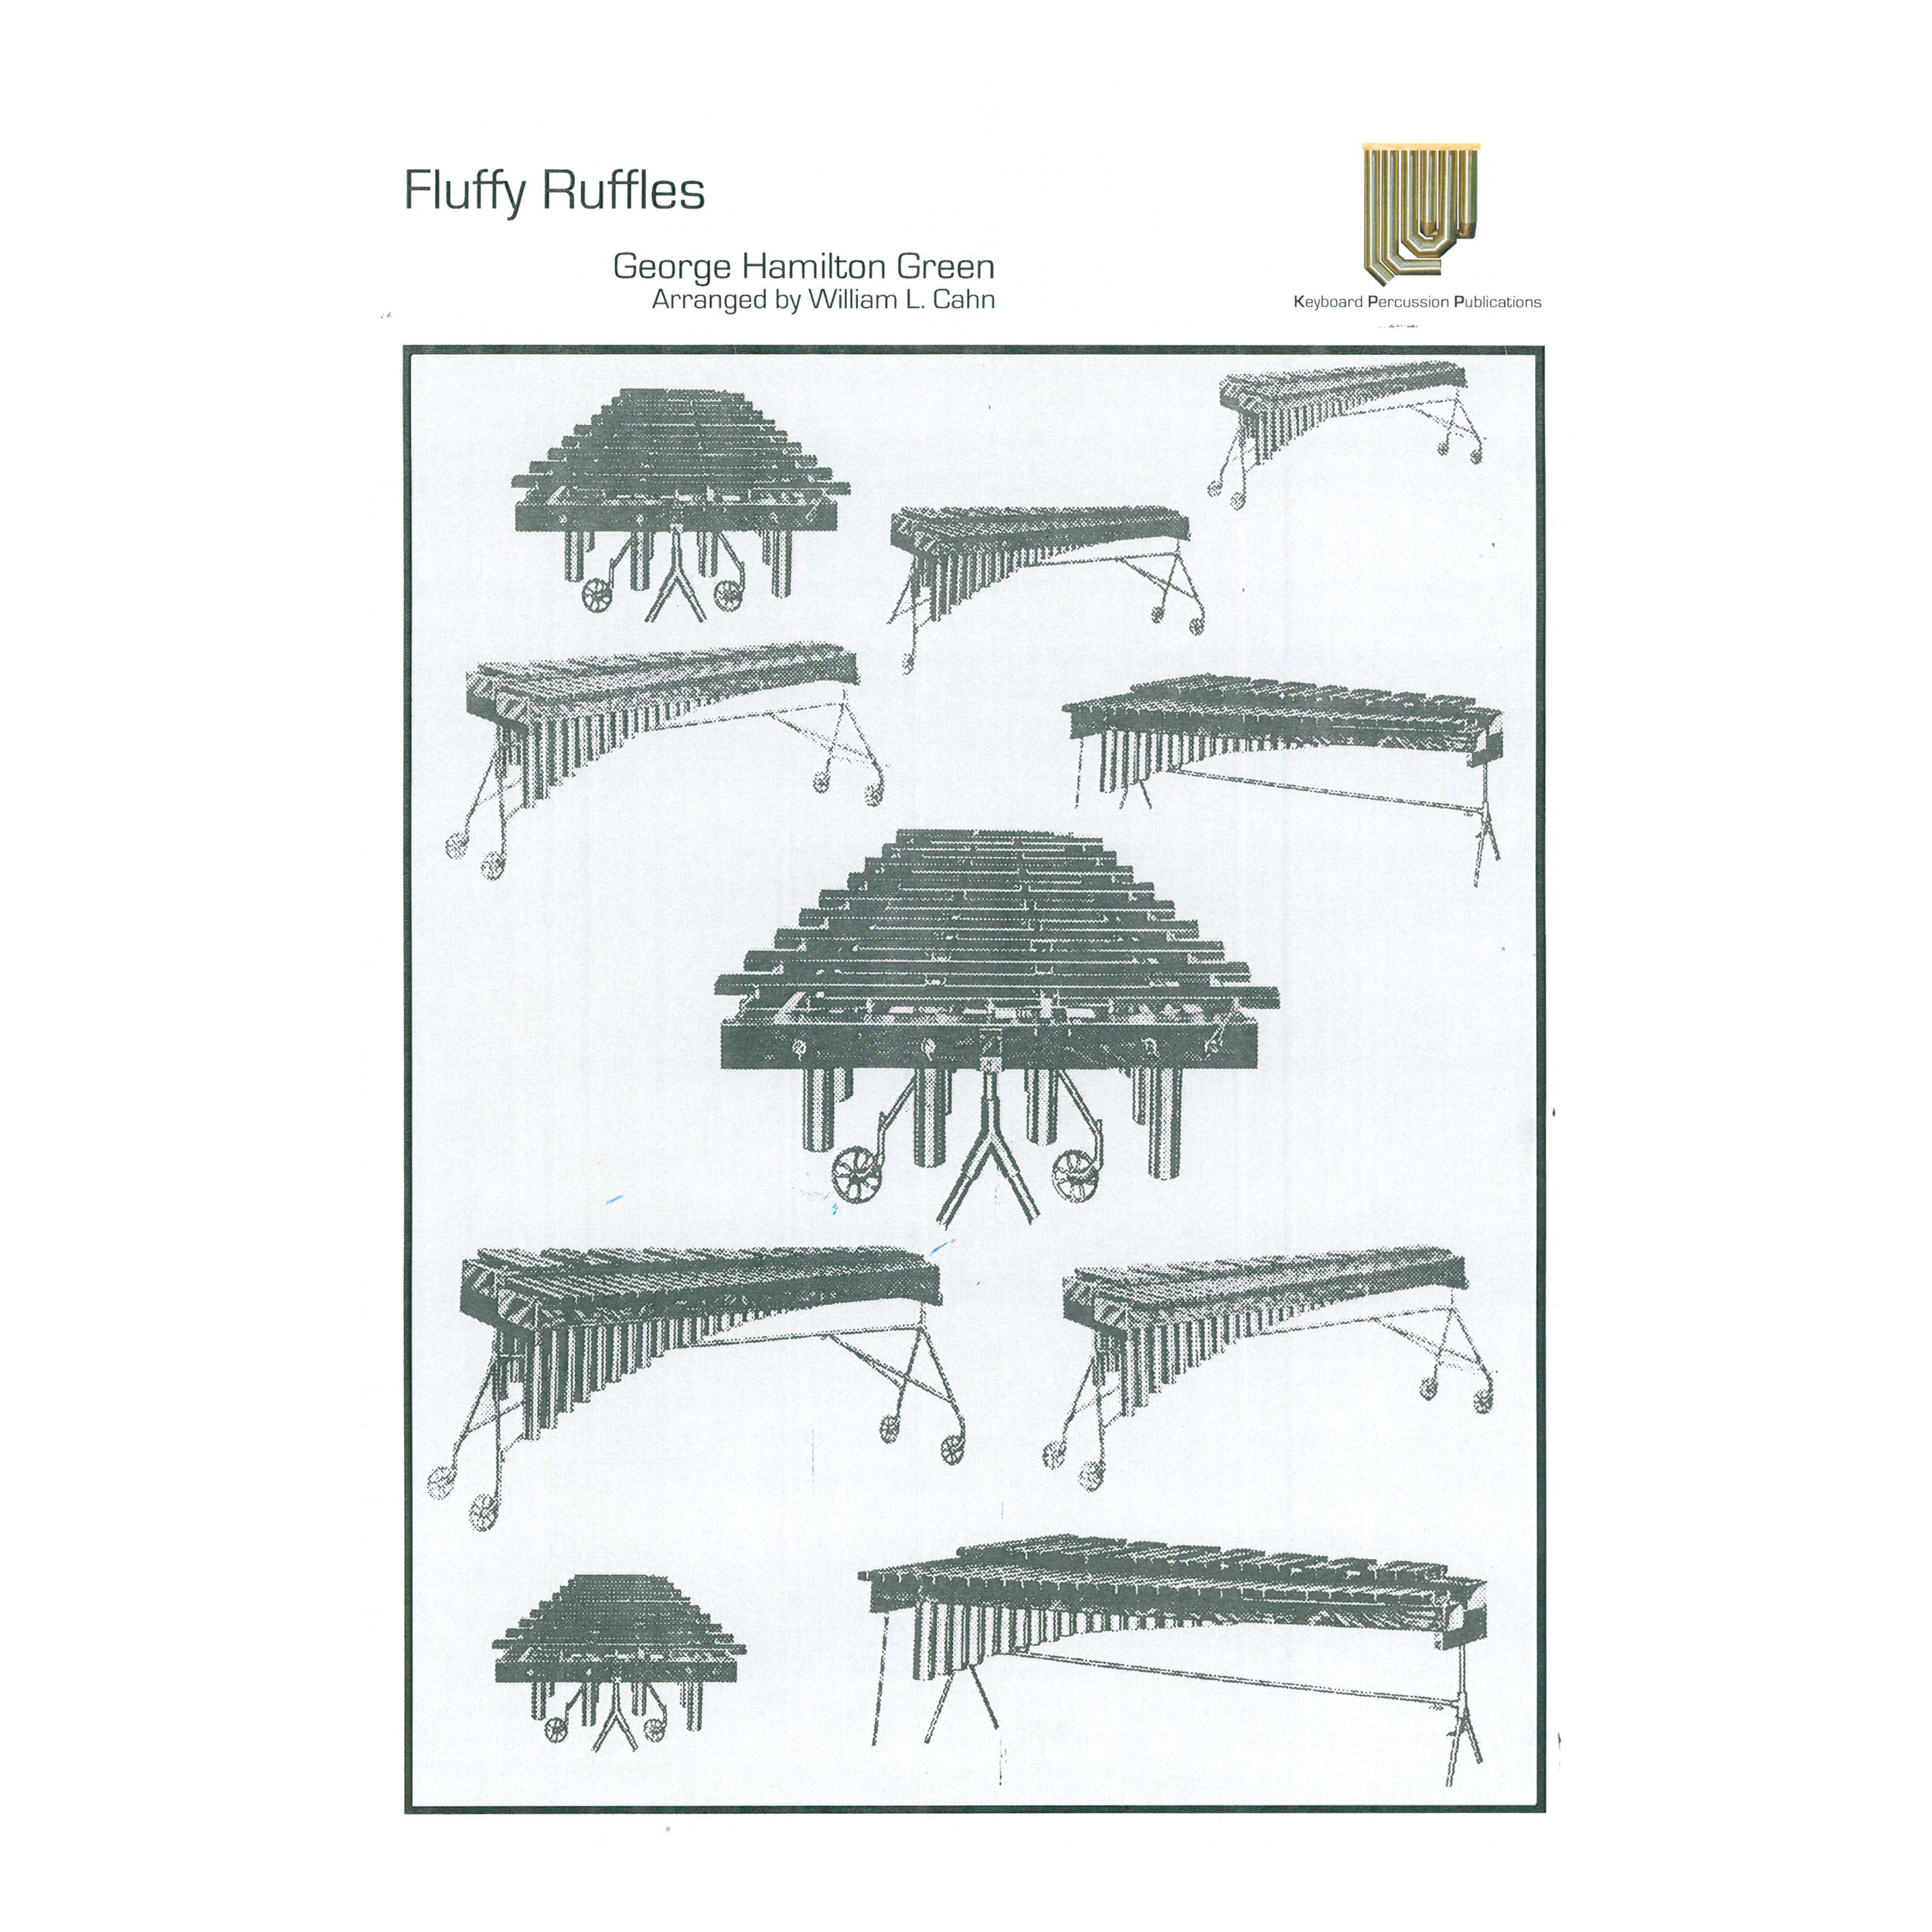 Fluffy Ruffles by George Hamilton Green arr. William L. Cahn